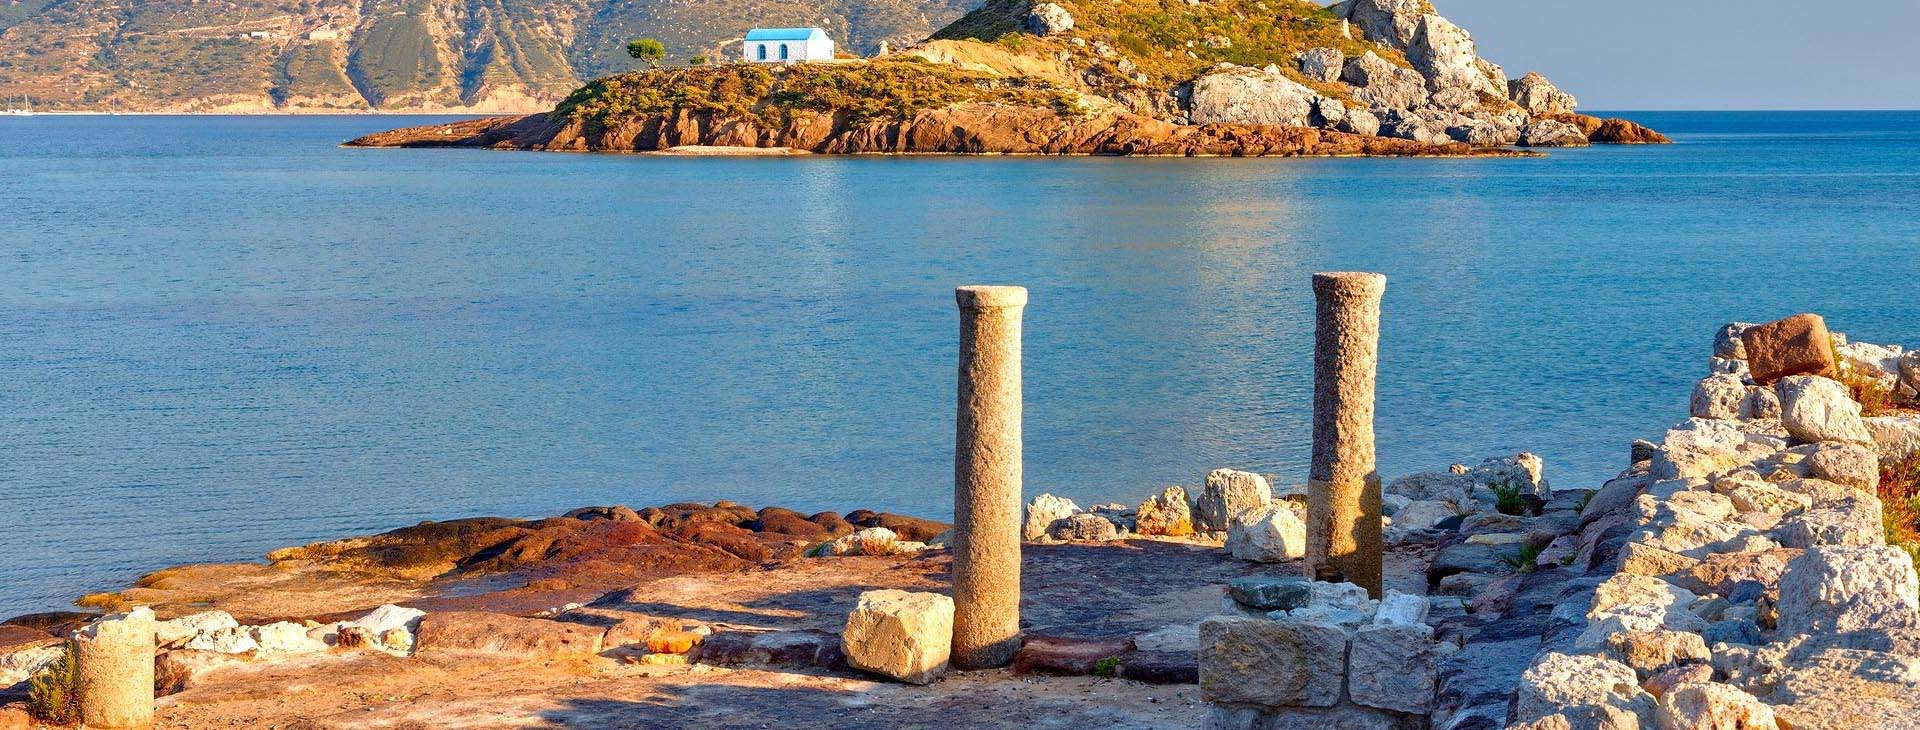 Kastri island and ancient ruins on Kos island